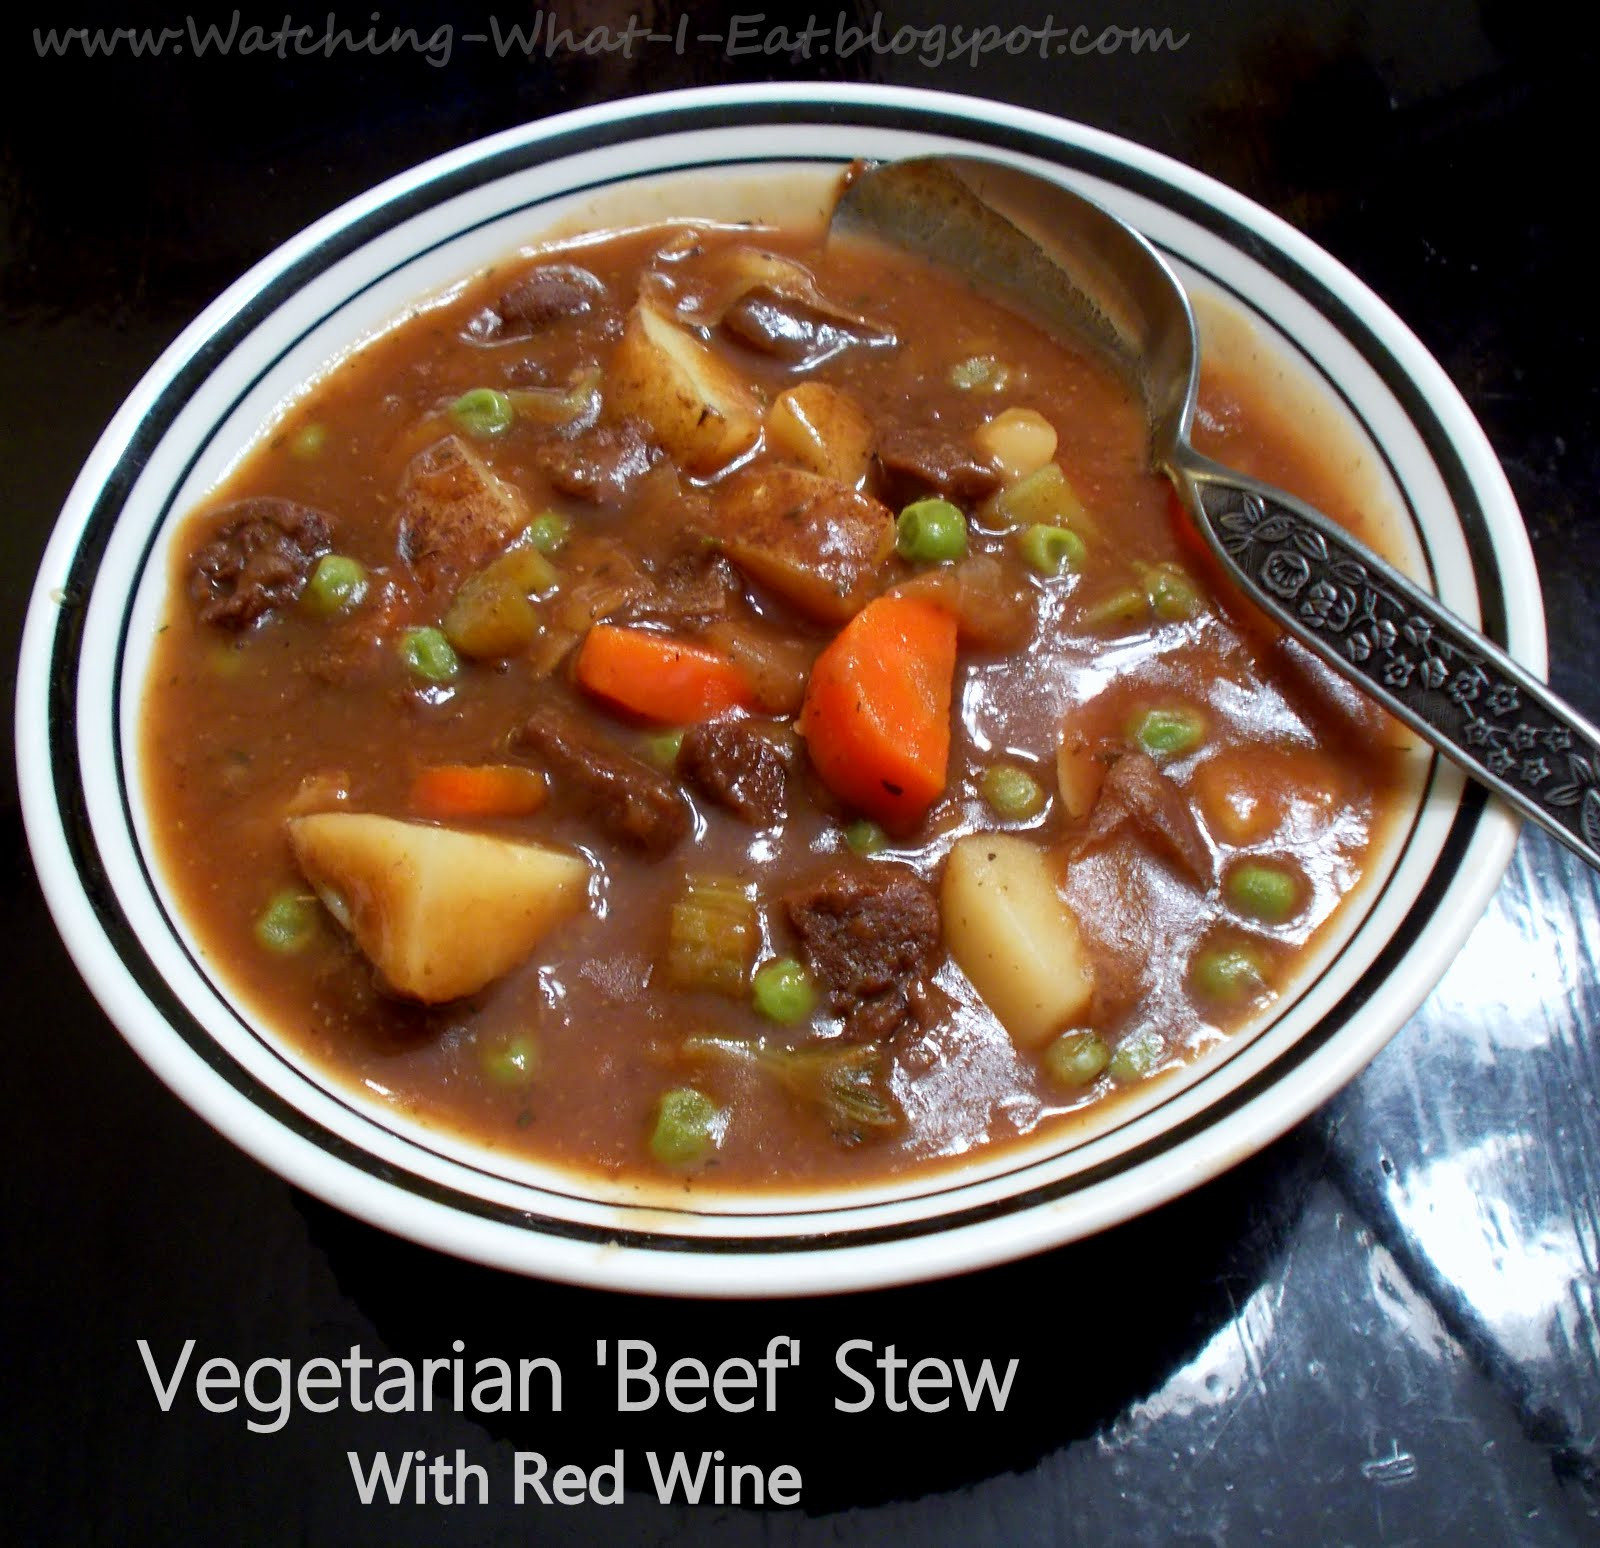 What To Serve With Beef Stew  Watching What I Eat Ve arian Beef Stew with Red Wine